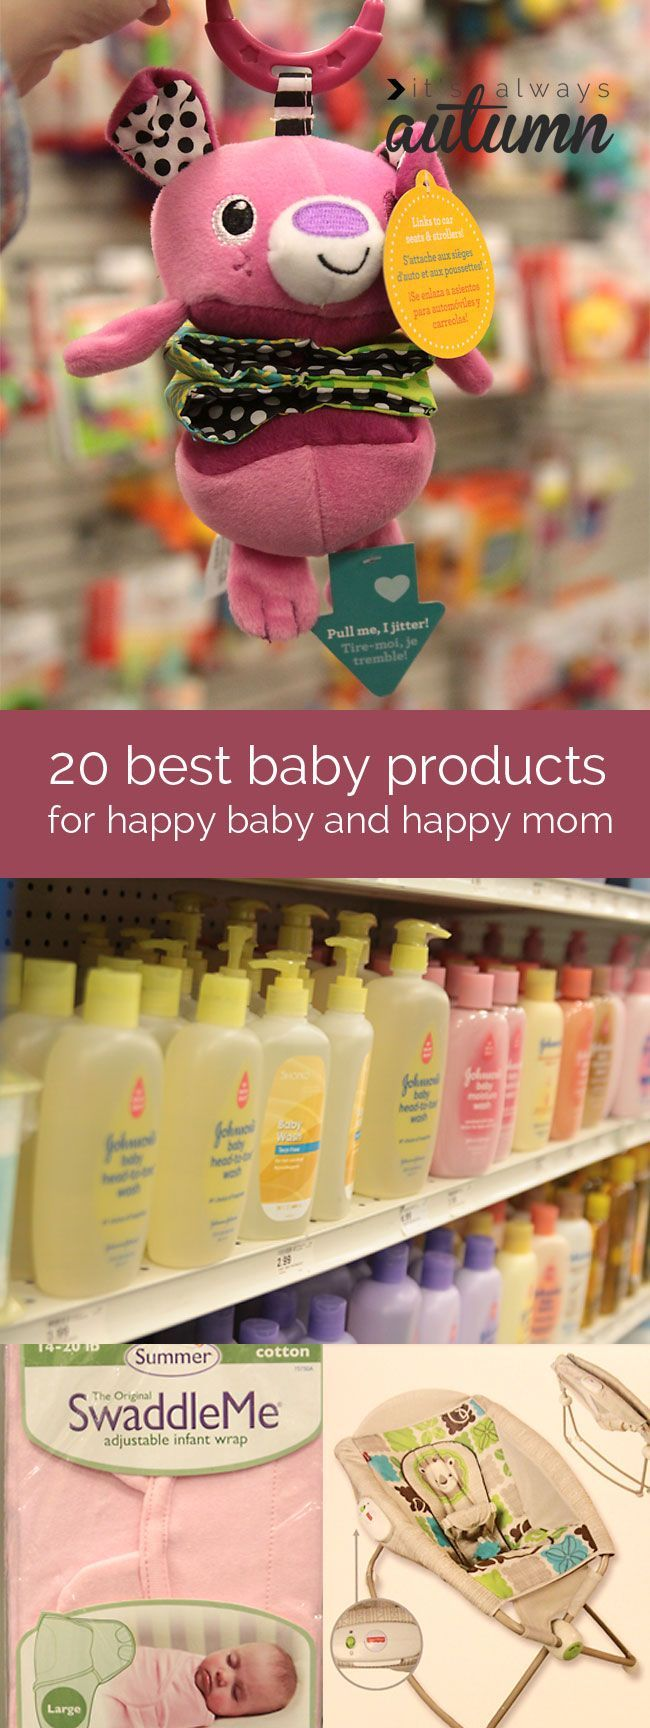 best products for baby to make life easier for new mom